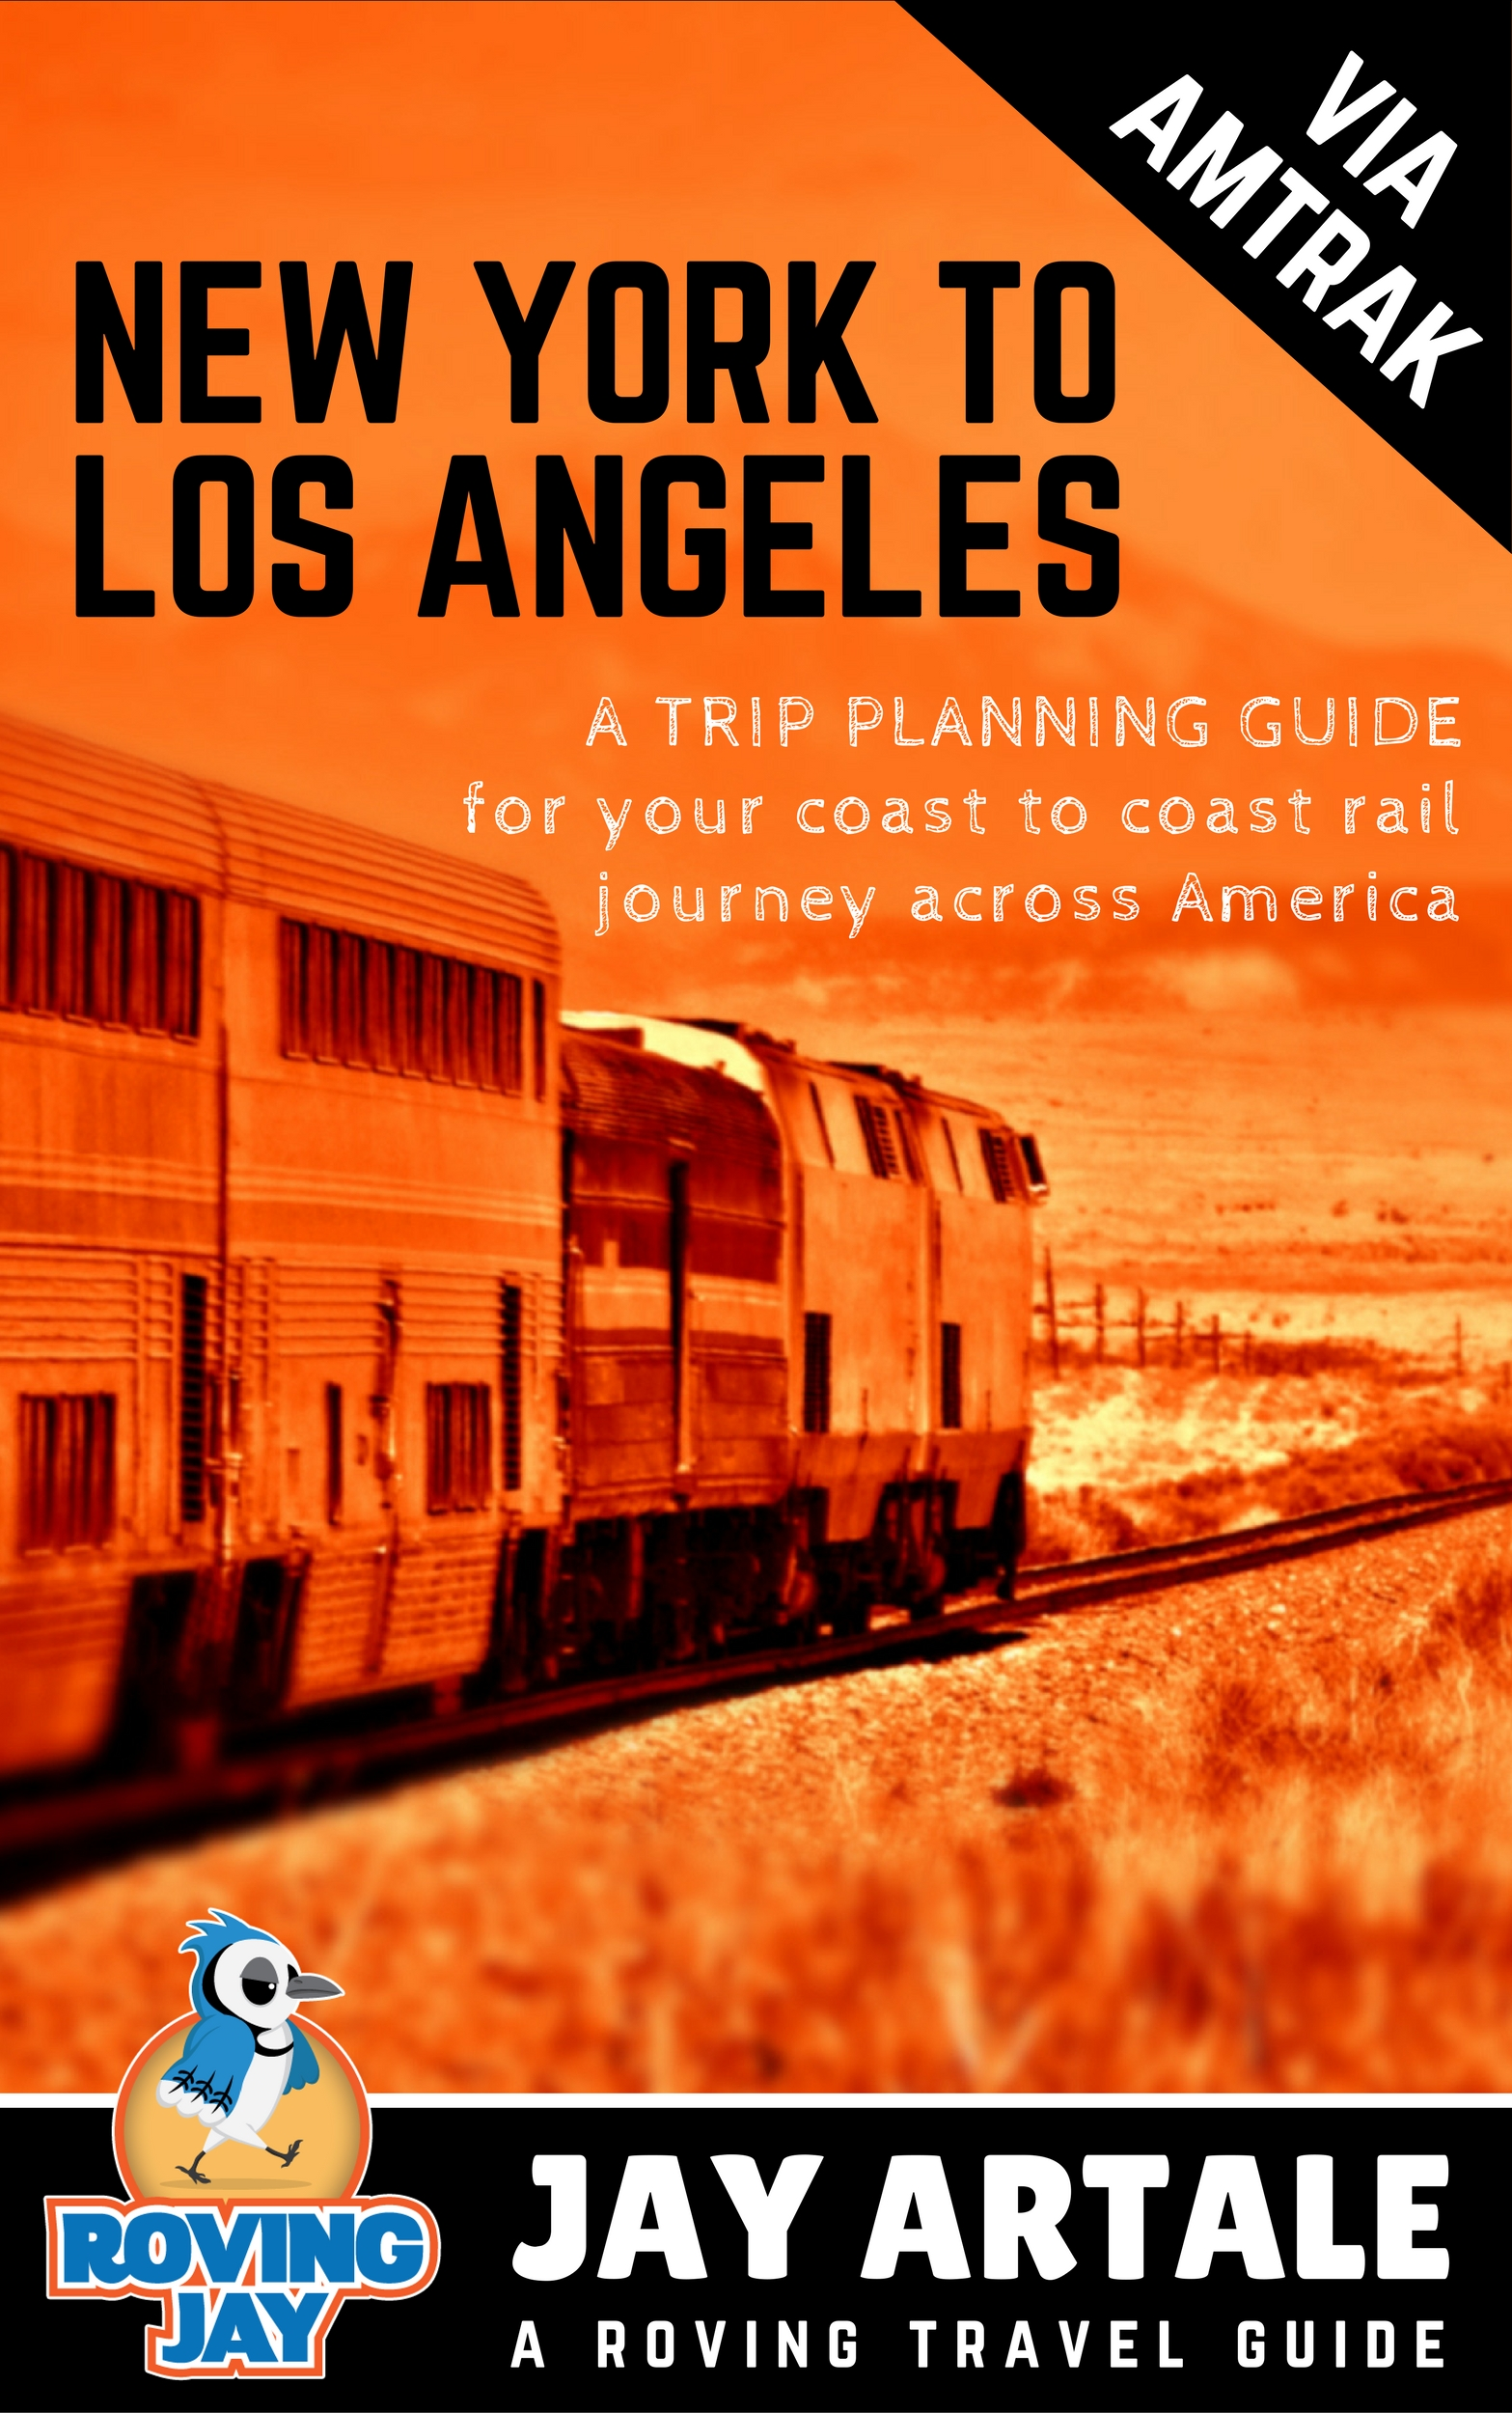 New York to Los Angeles Trip Planning ebook